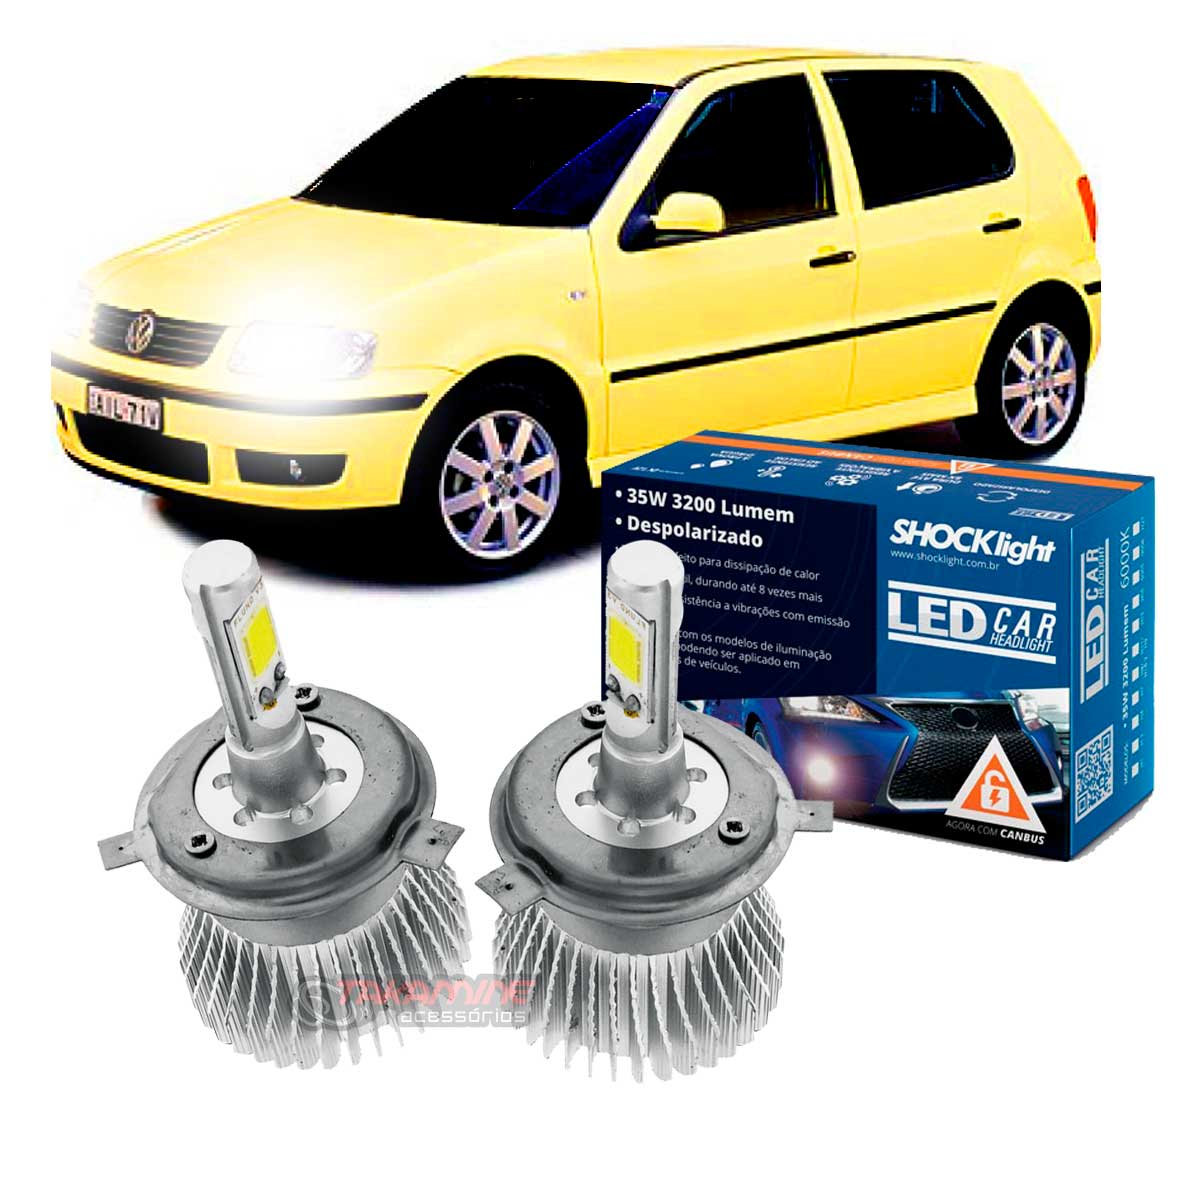 Kit LED Polo 1996 1997 1998 1999 2000 tipo xenon farol alto e baixo H4 35/35W Headlight